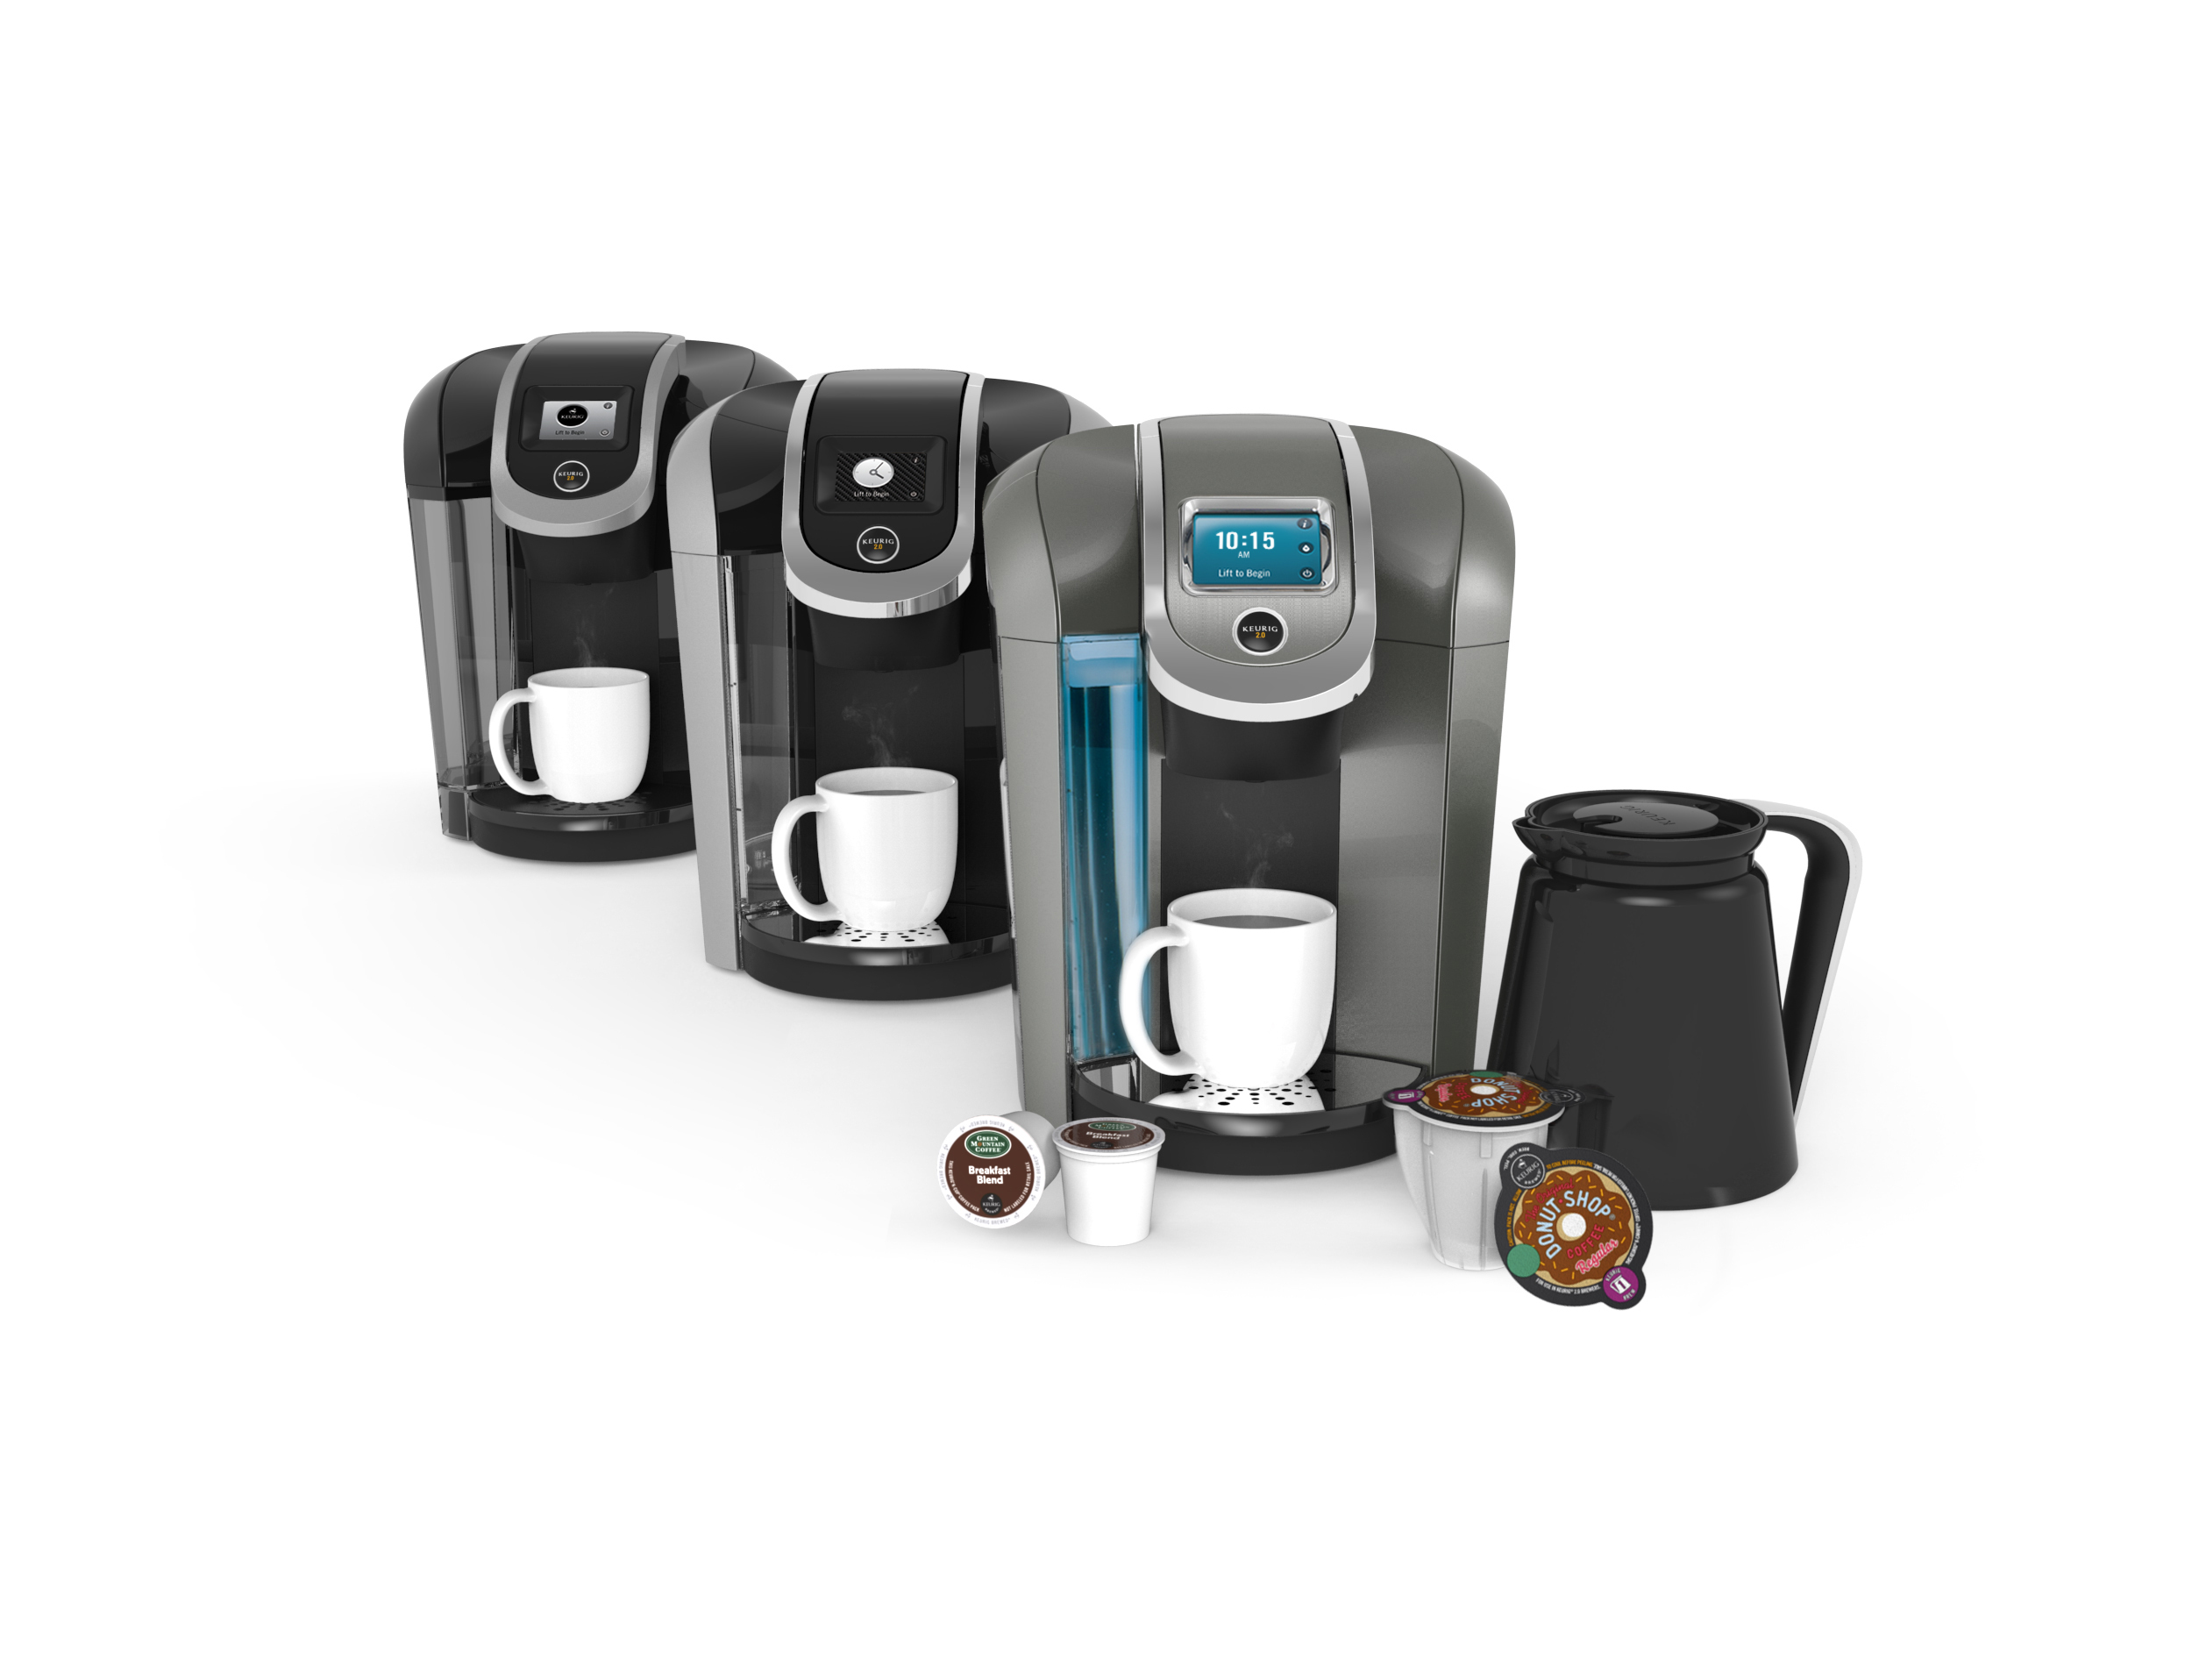 The Keurig® 2.0 system is available in the K500, K400 and K300 series. (Photo: Business Wire)